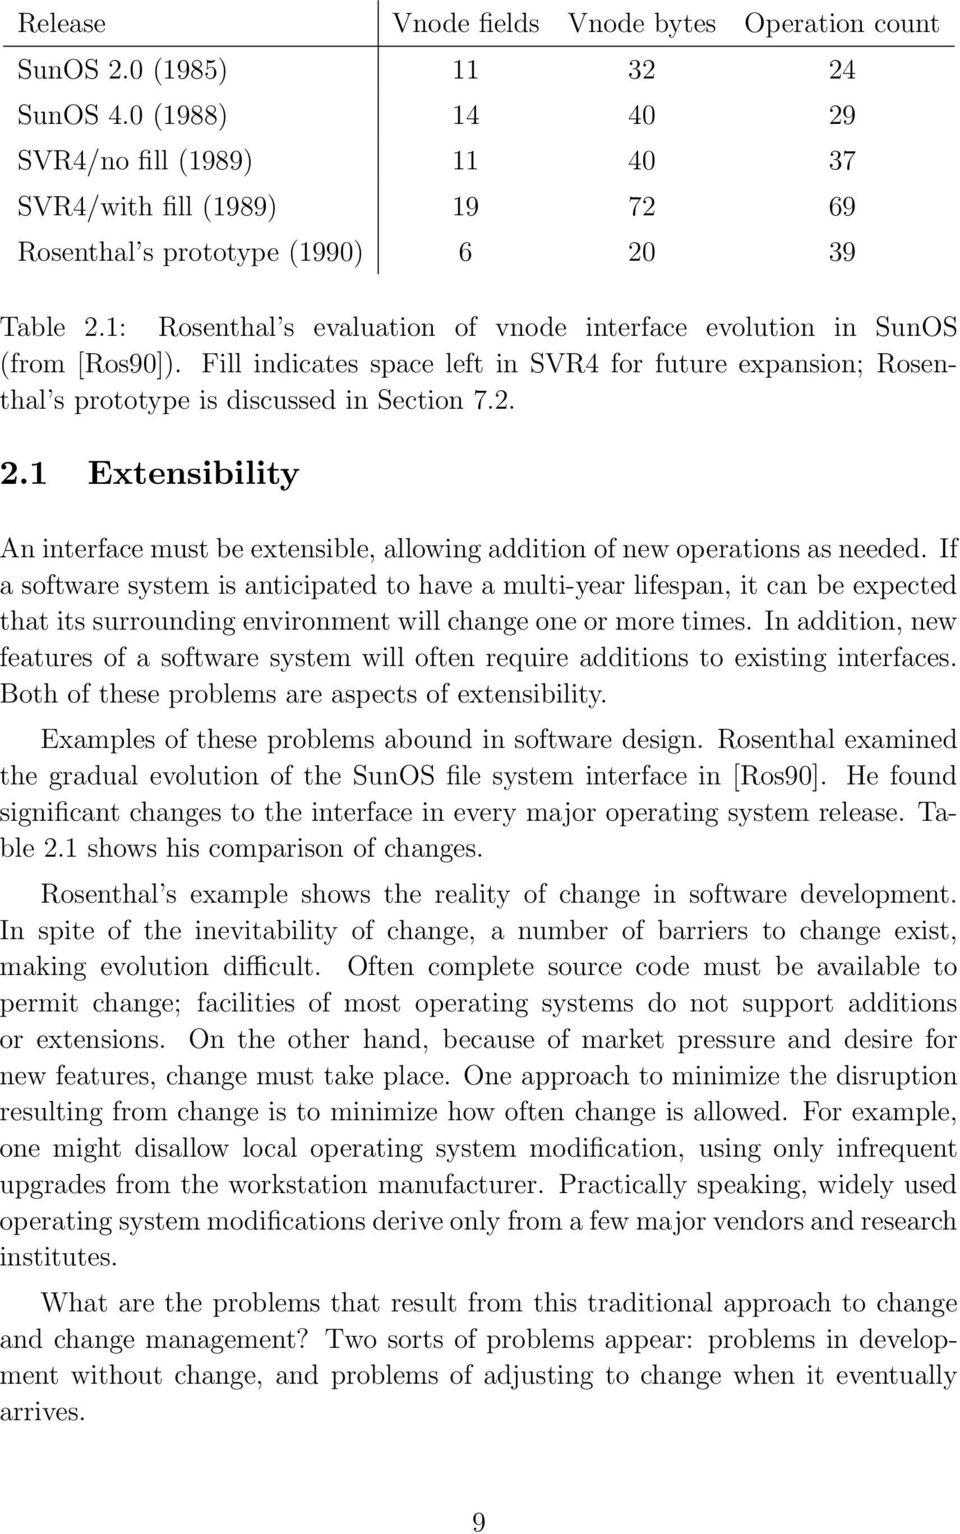 1: Rosenthal s evaluation of vnode interface evolution in SunOS (from [Ros90]). Fill indicates space left in SVR4 for future expansion; Rosenthal s prototype is discussed in Section 7.2. 2.